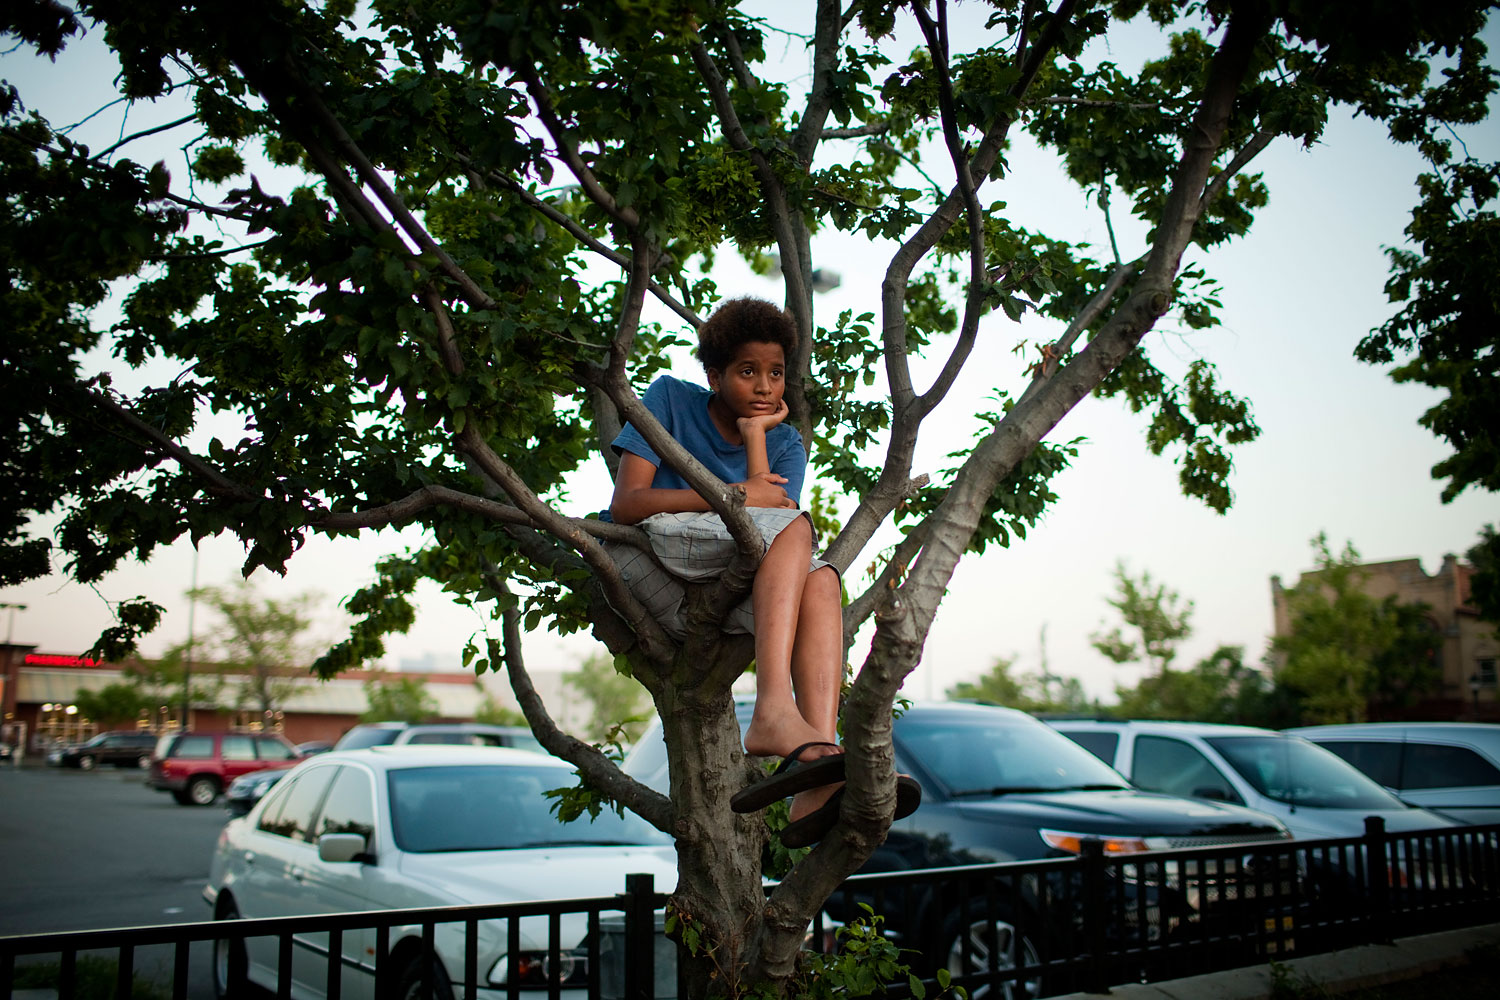 July 16, 2013. Dylan Strother, 13, of Jersey City, watches the crowd from a tree at the Hub Shopping Center where supporters of Trayvon Martin staged a rally in memory of Martin in Jersey City, N.J.